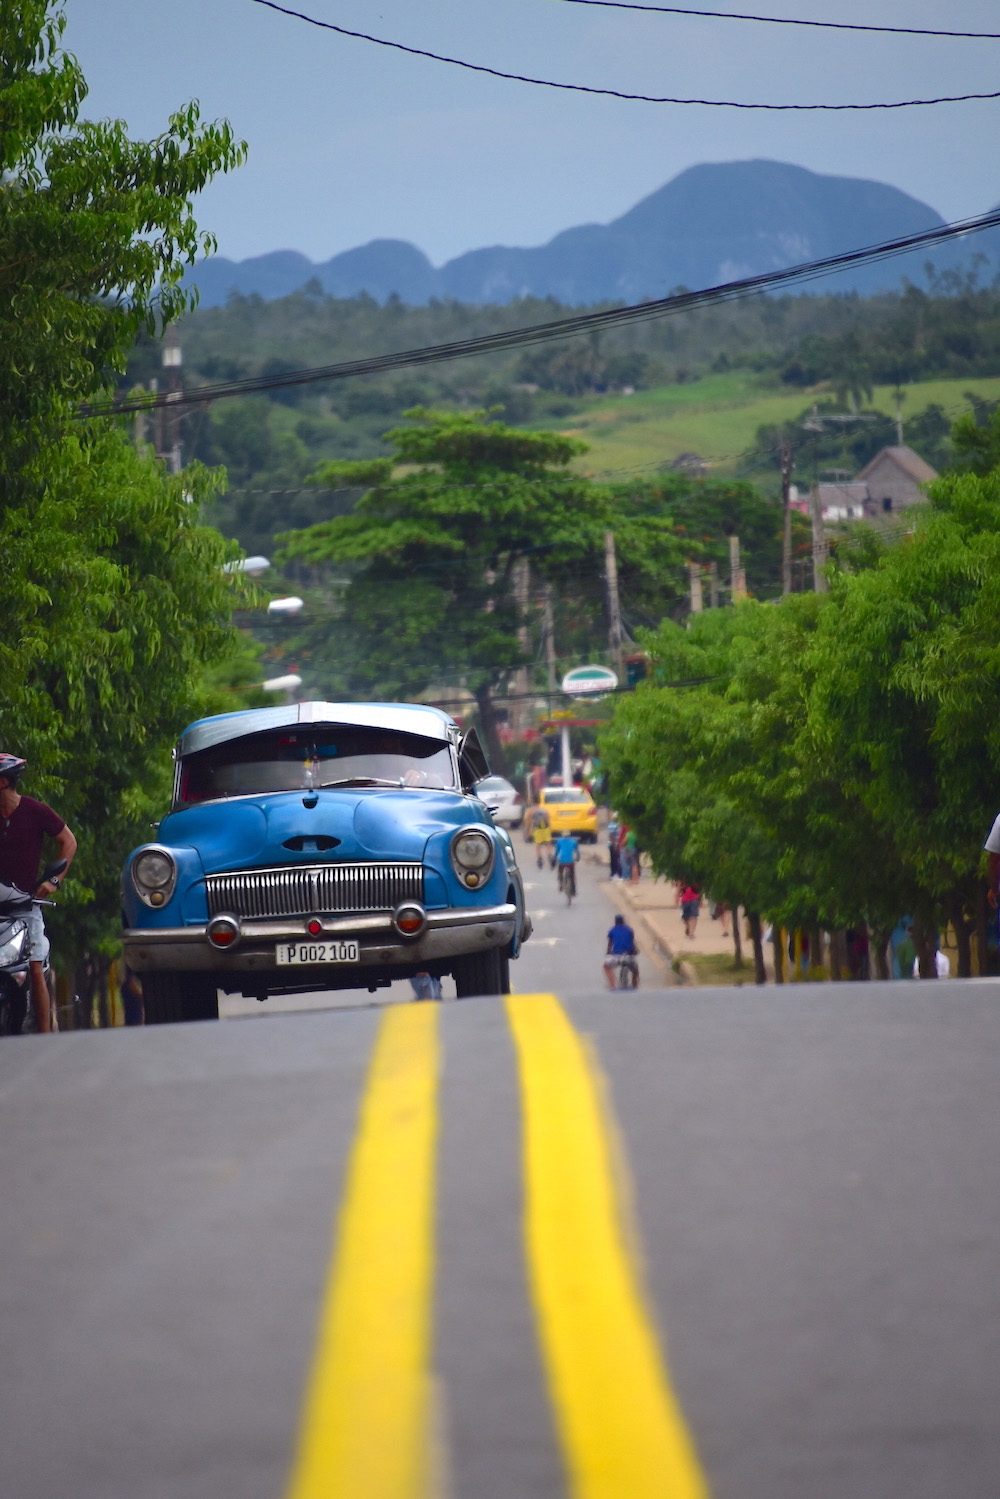 Cuba travel pictures Viñales classic car